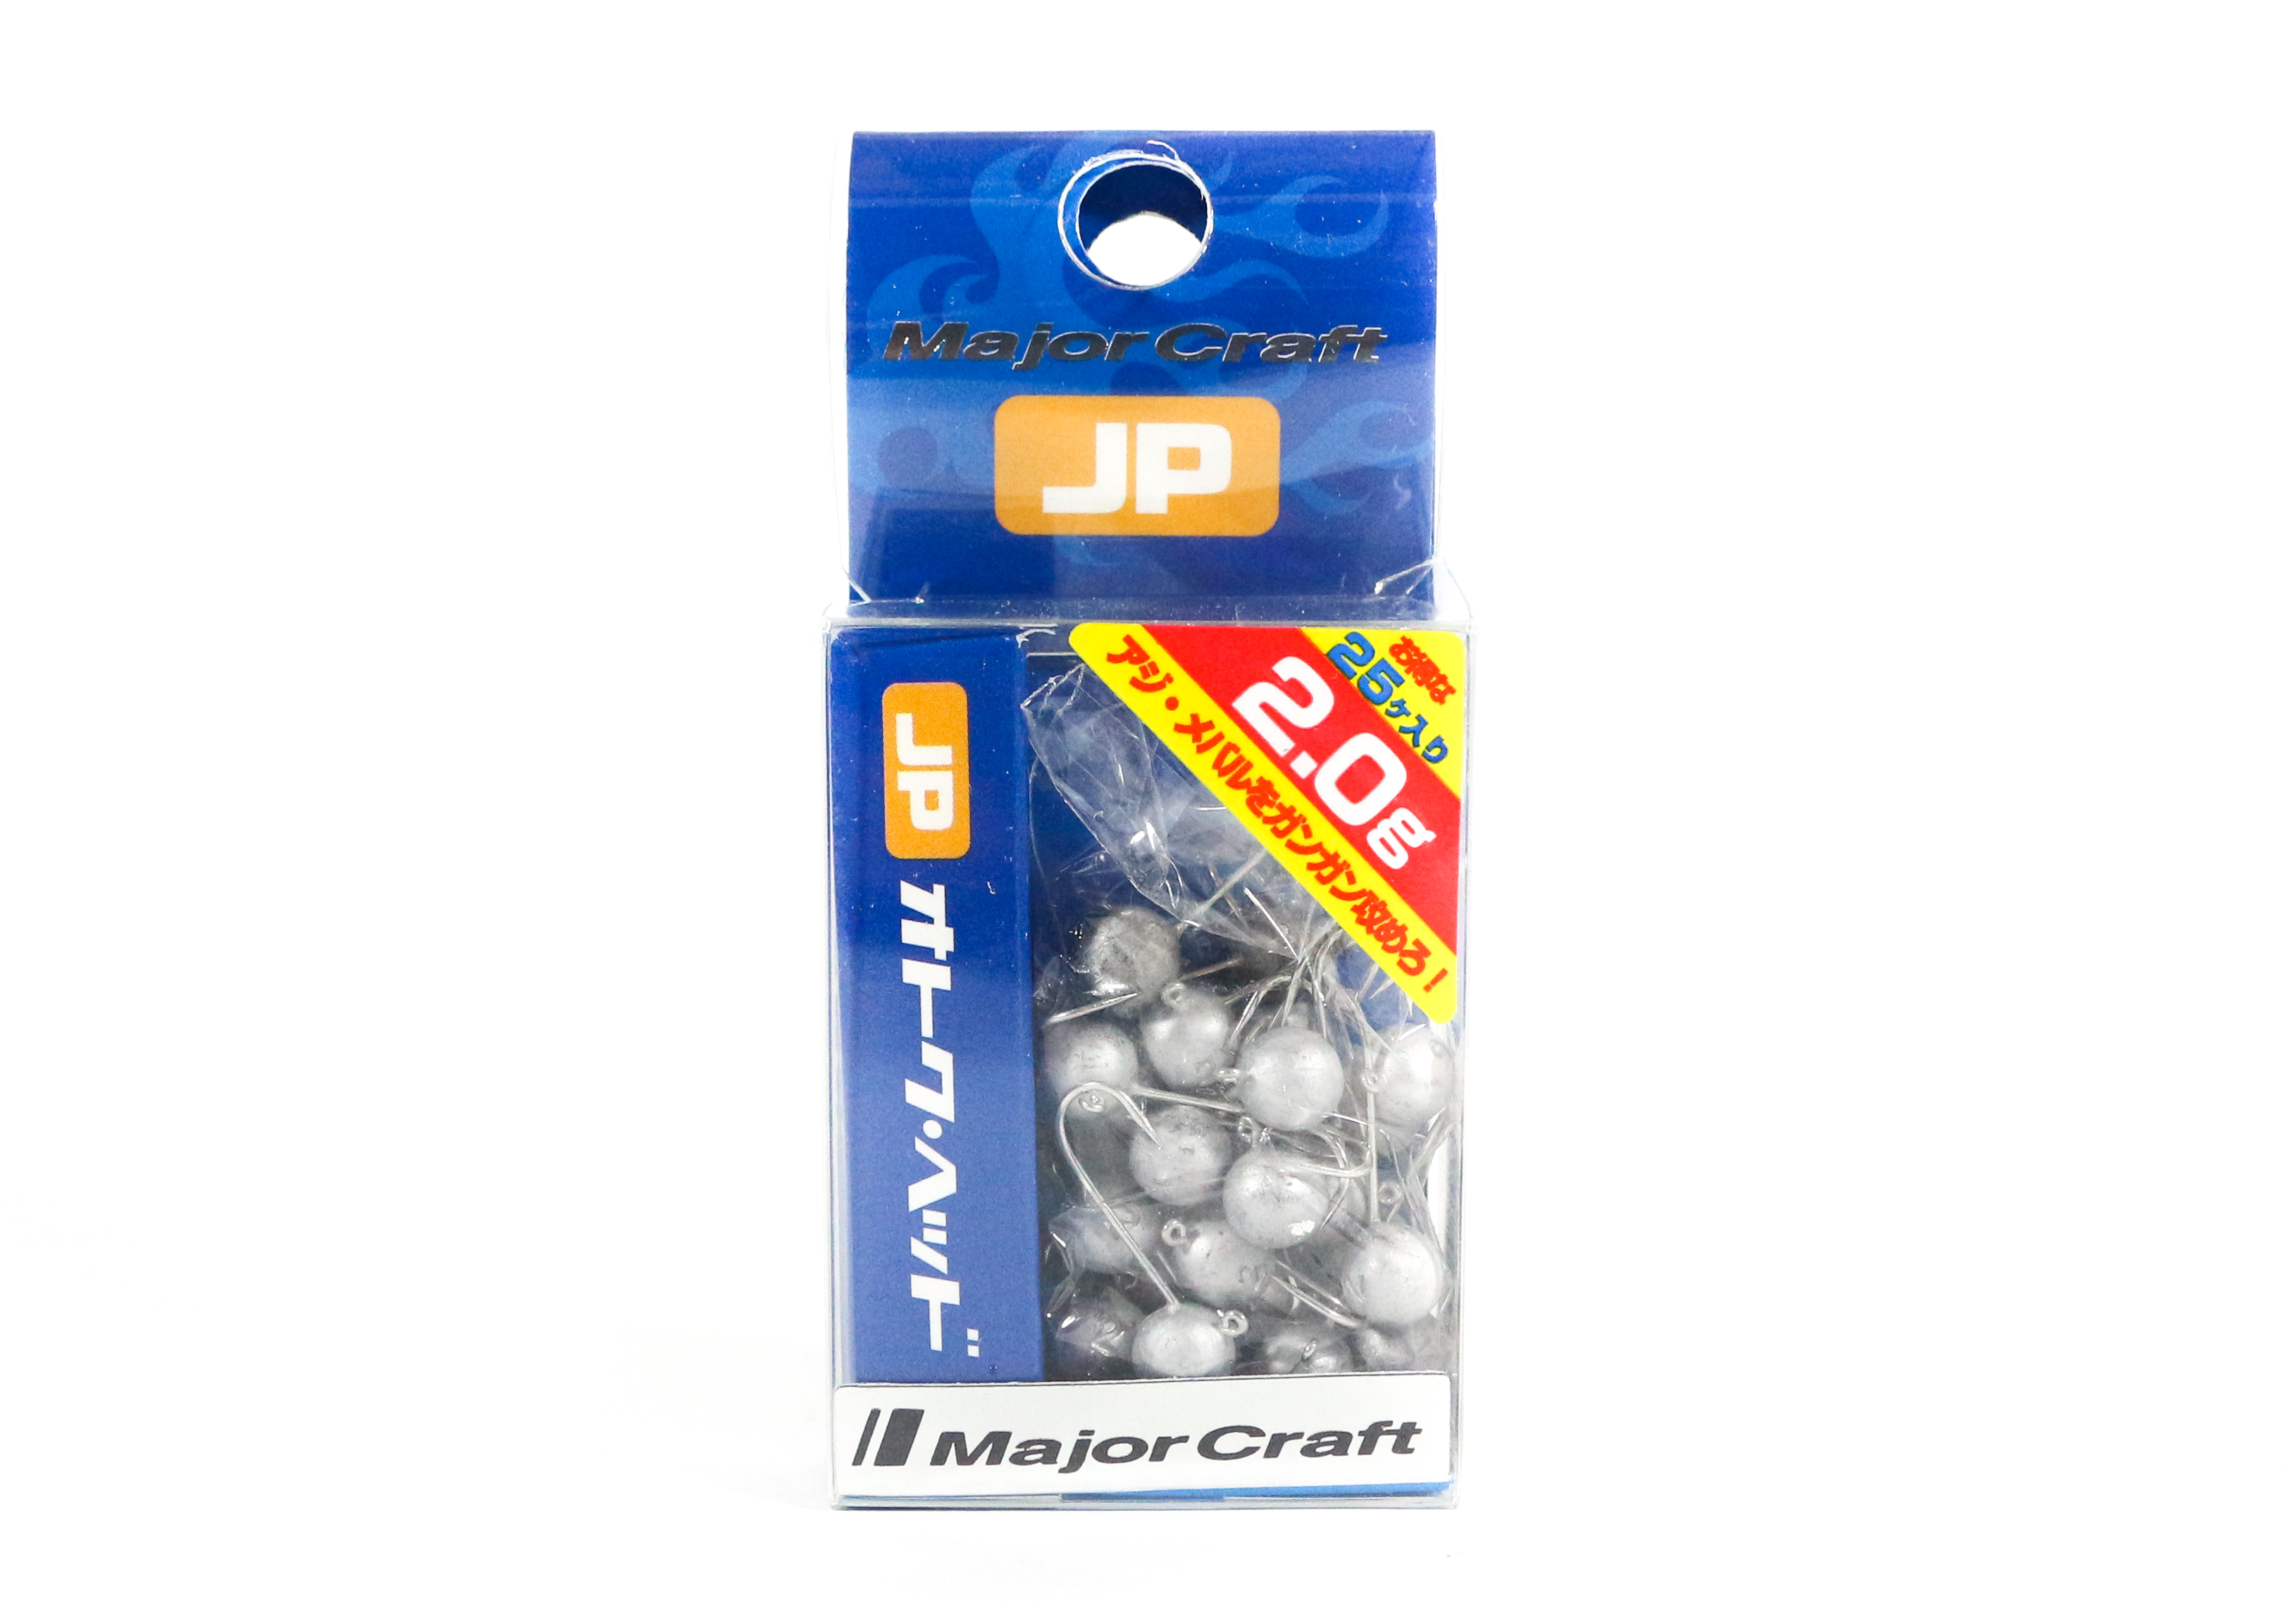 Major Craft Jig Head OTHD-2.0 grams Size 8 25 piece pack (6559)